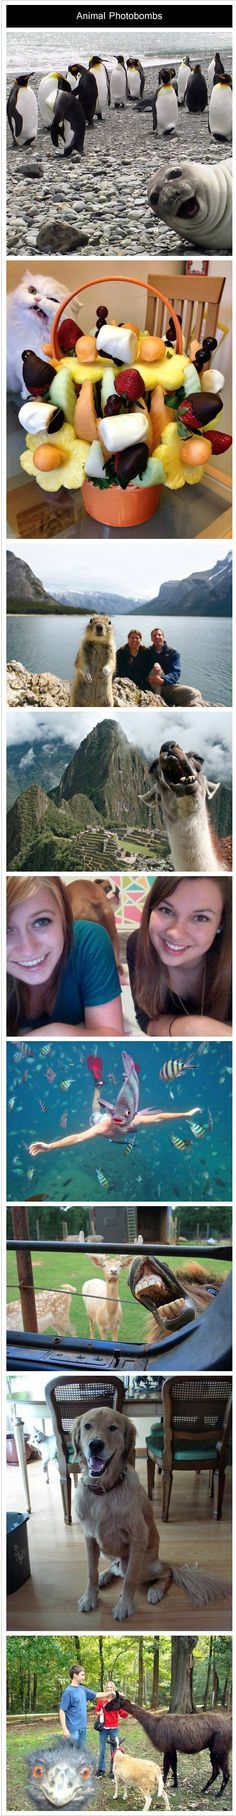 Animals do the best photo bombs. These seriously make me laugh EVERY time! Lol the last one...